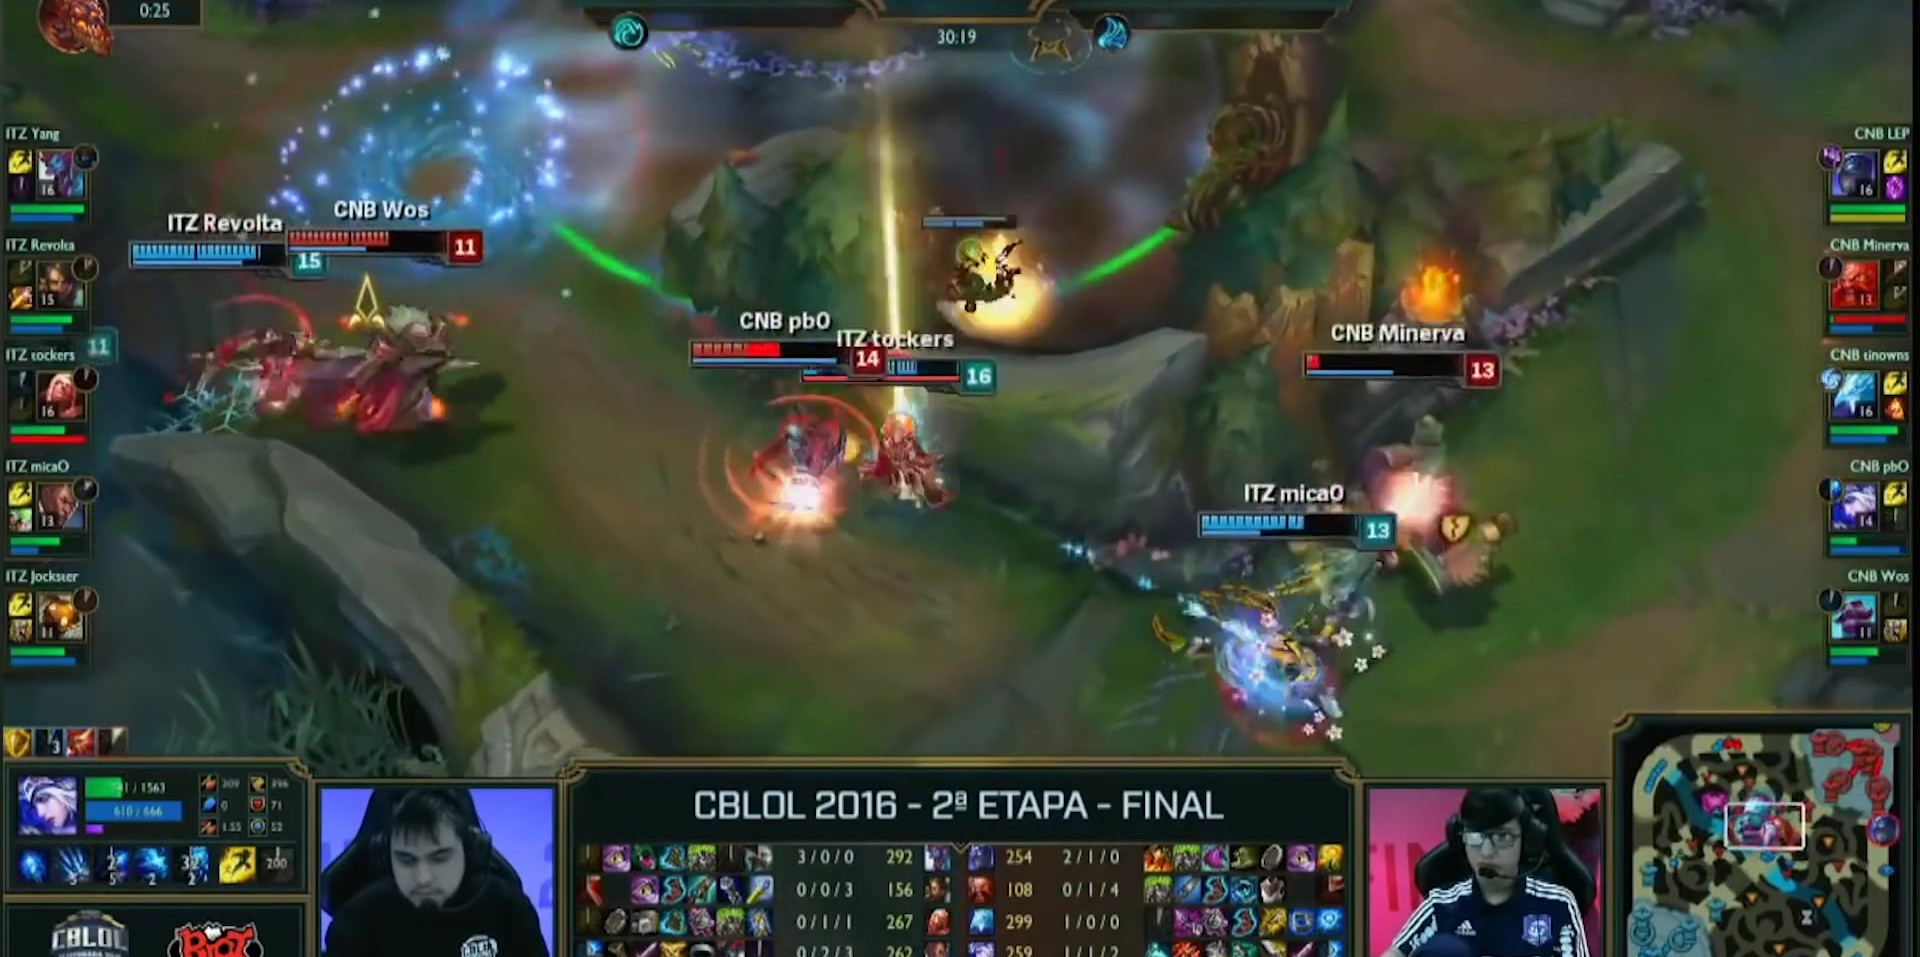 Final do #CBLOL 2016.mp4